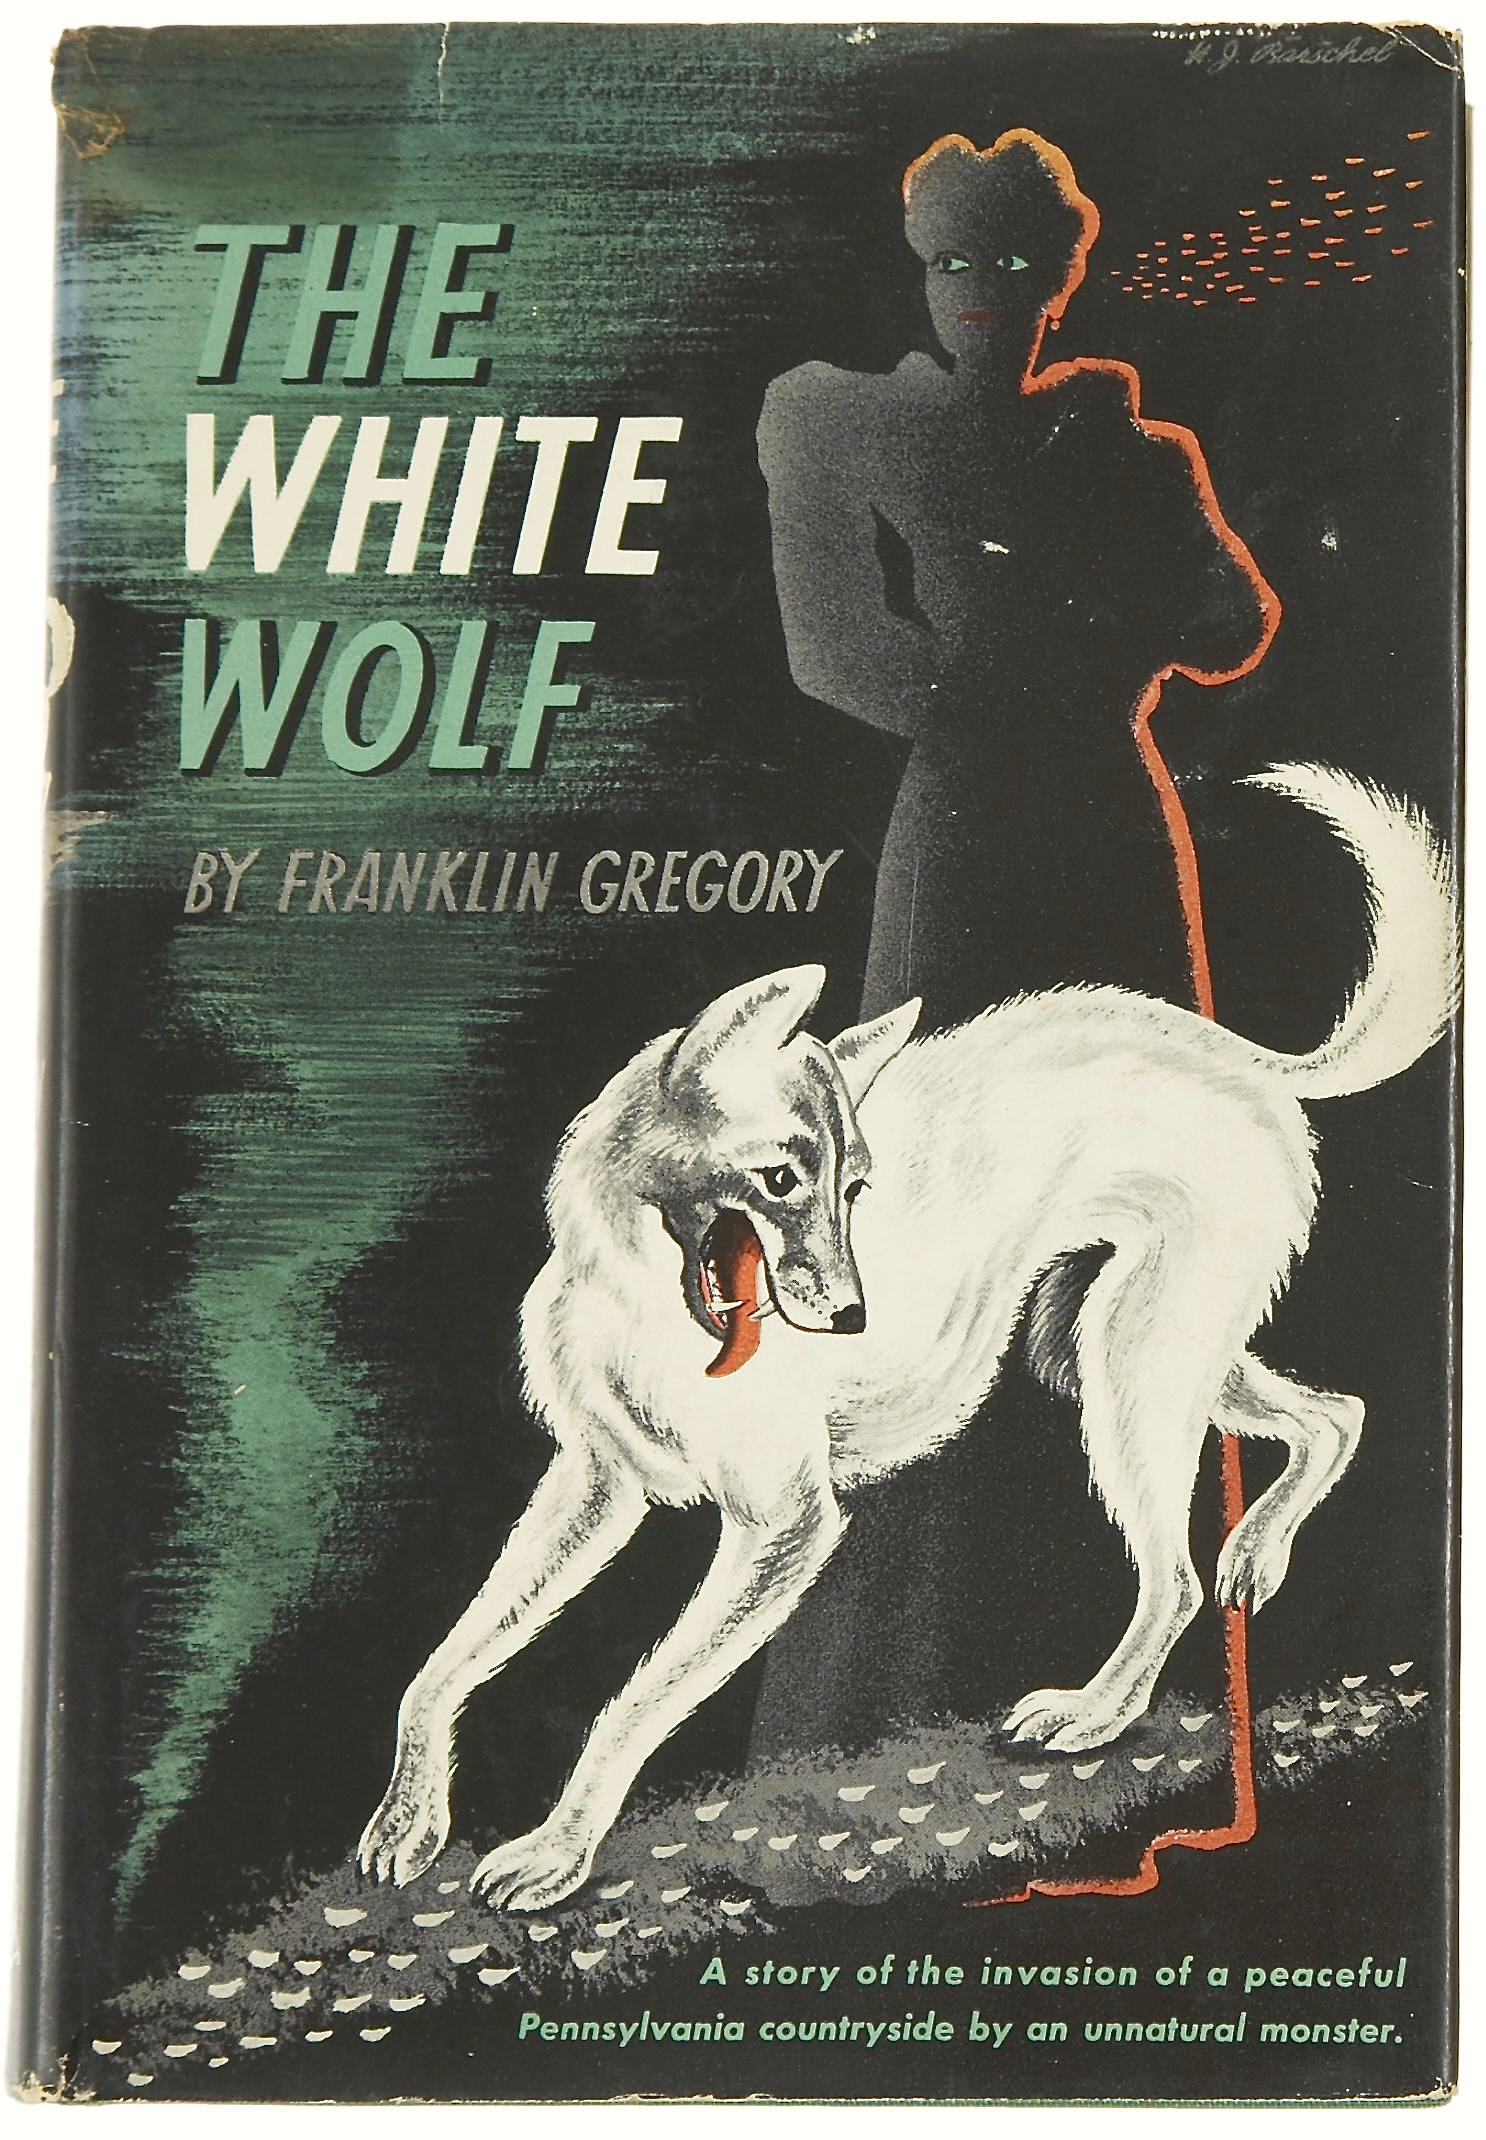 Franklin Gregory. The White Wolf. New York: Random House, [1941]. First printing.